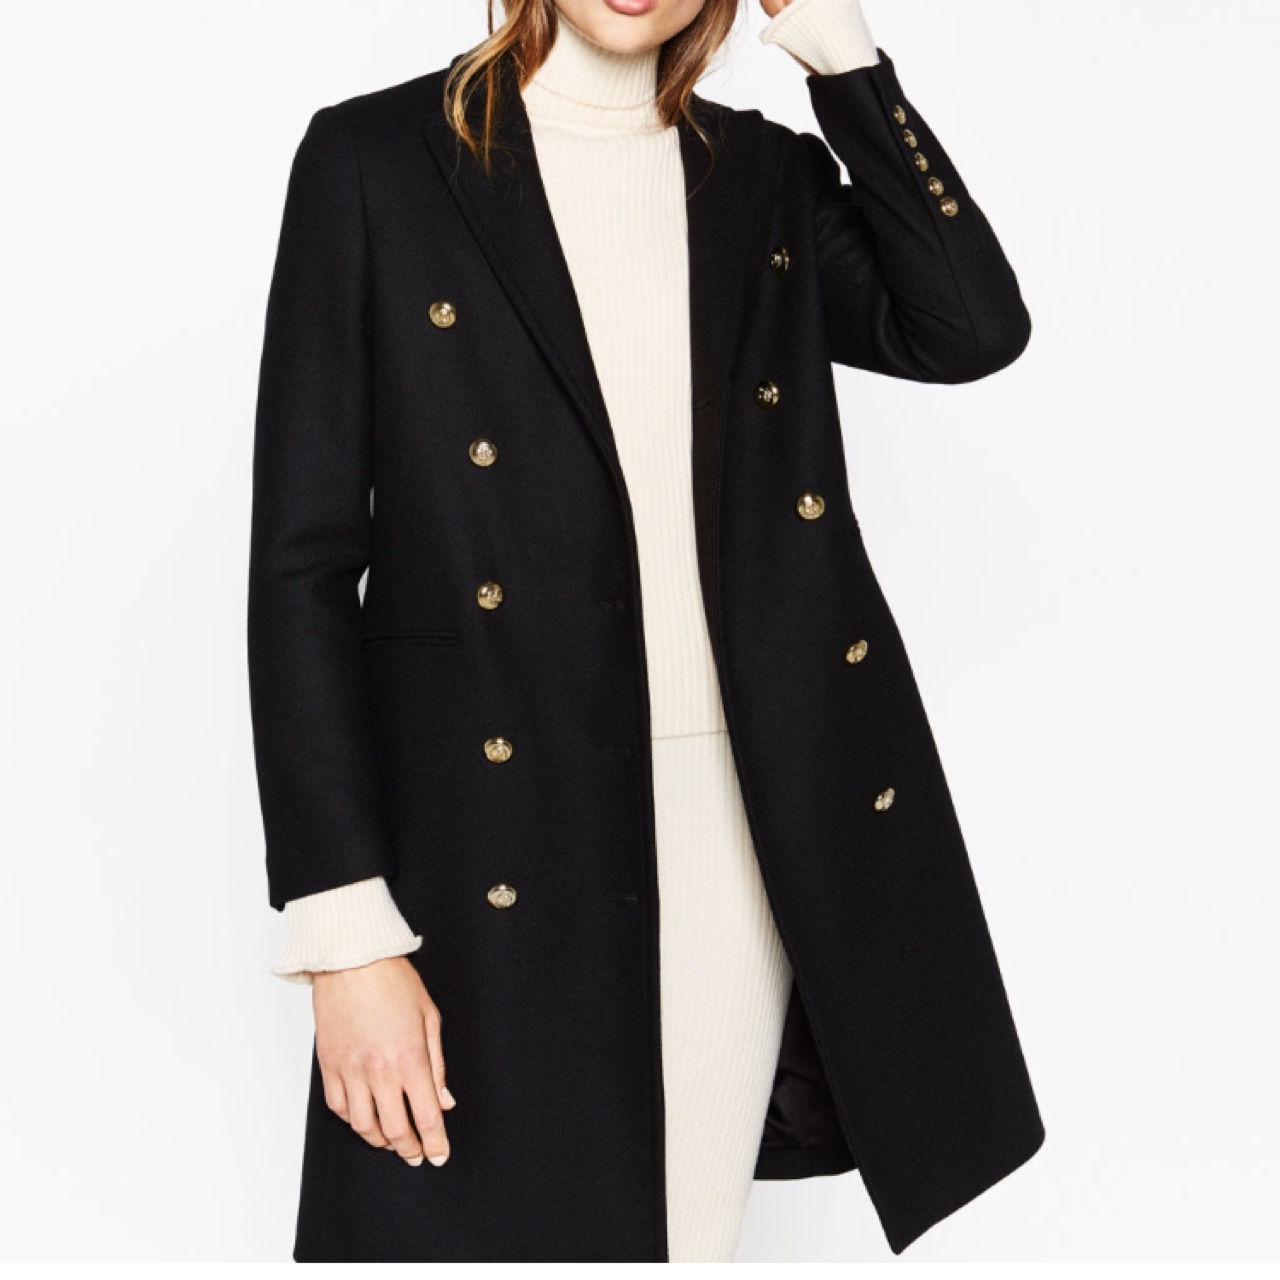 Zara military coat with gold buttons  Worn a few    - Depop